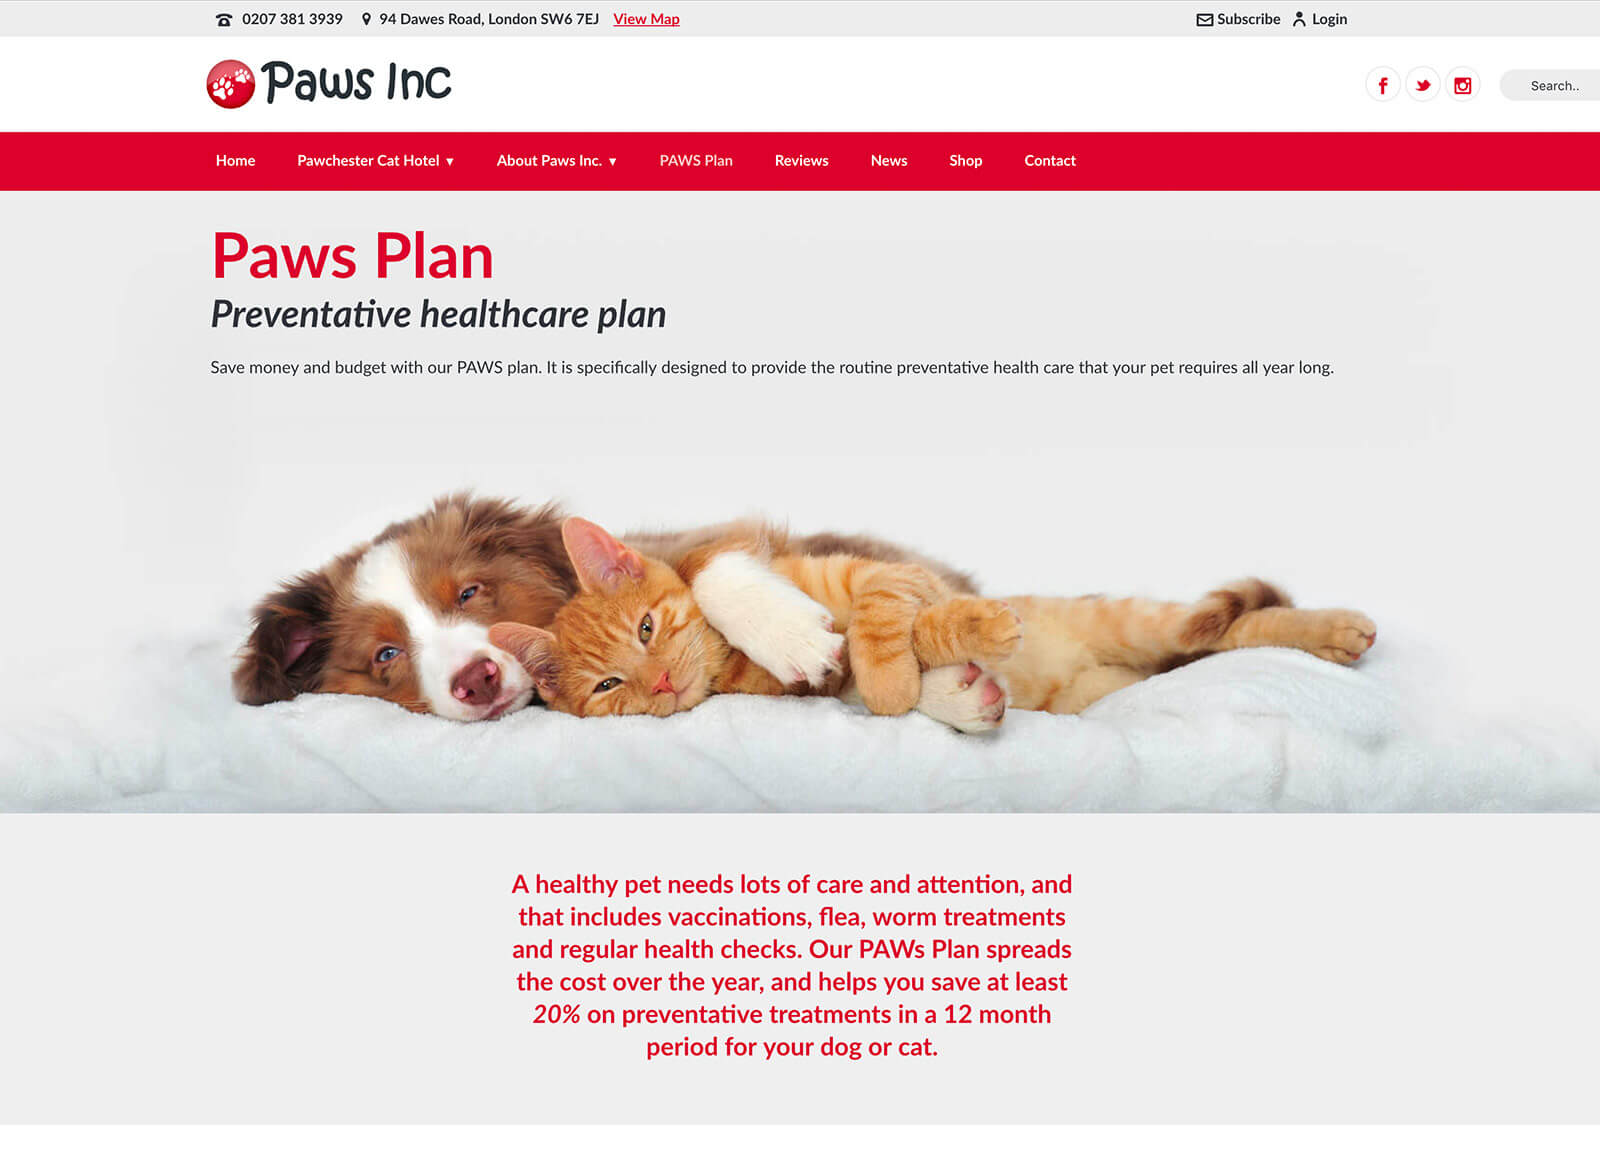 Cat hotel and vet practice website design - Healthy pet club page